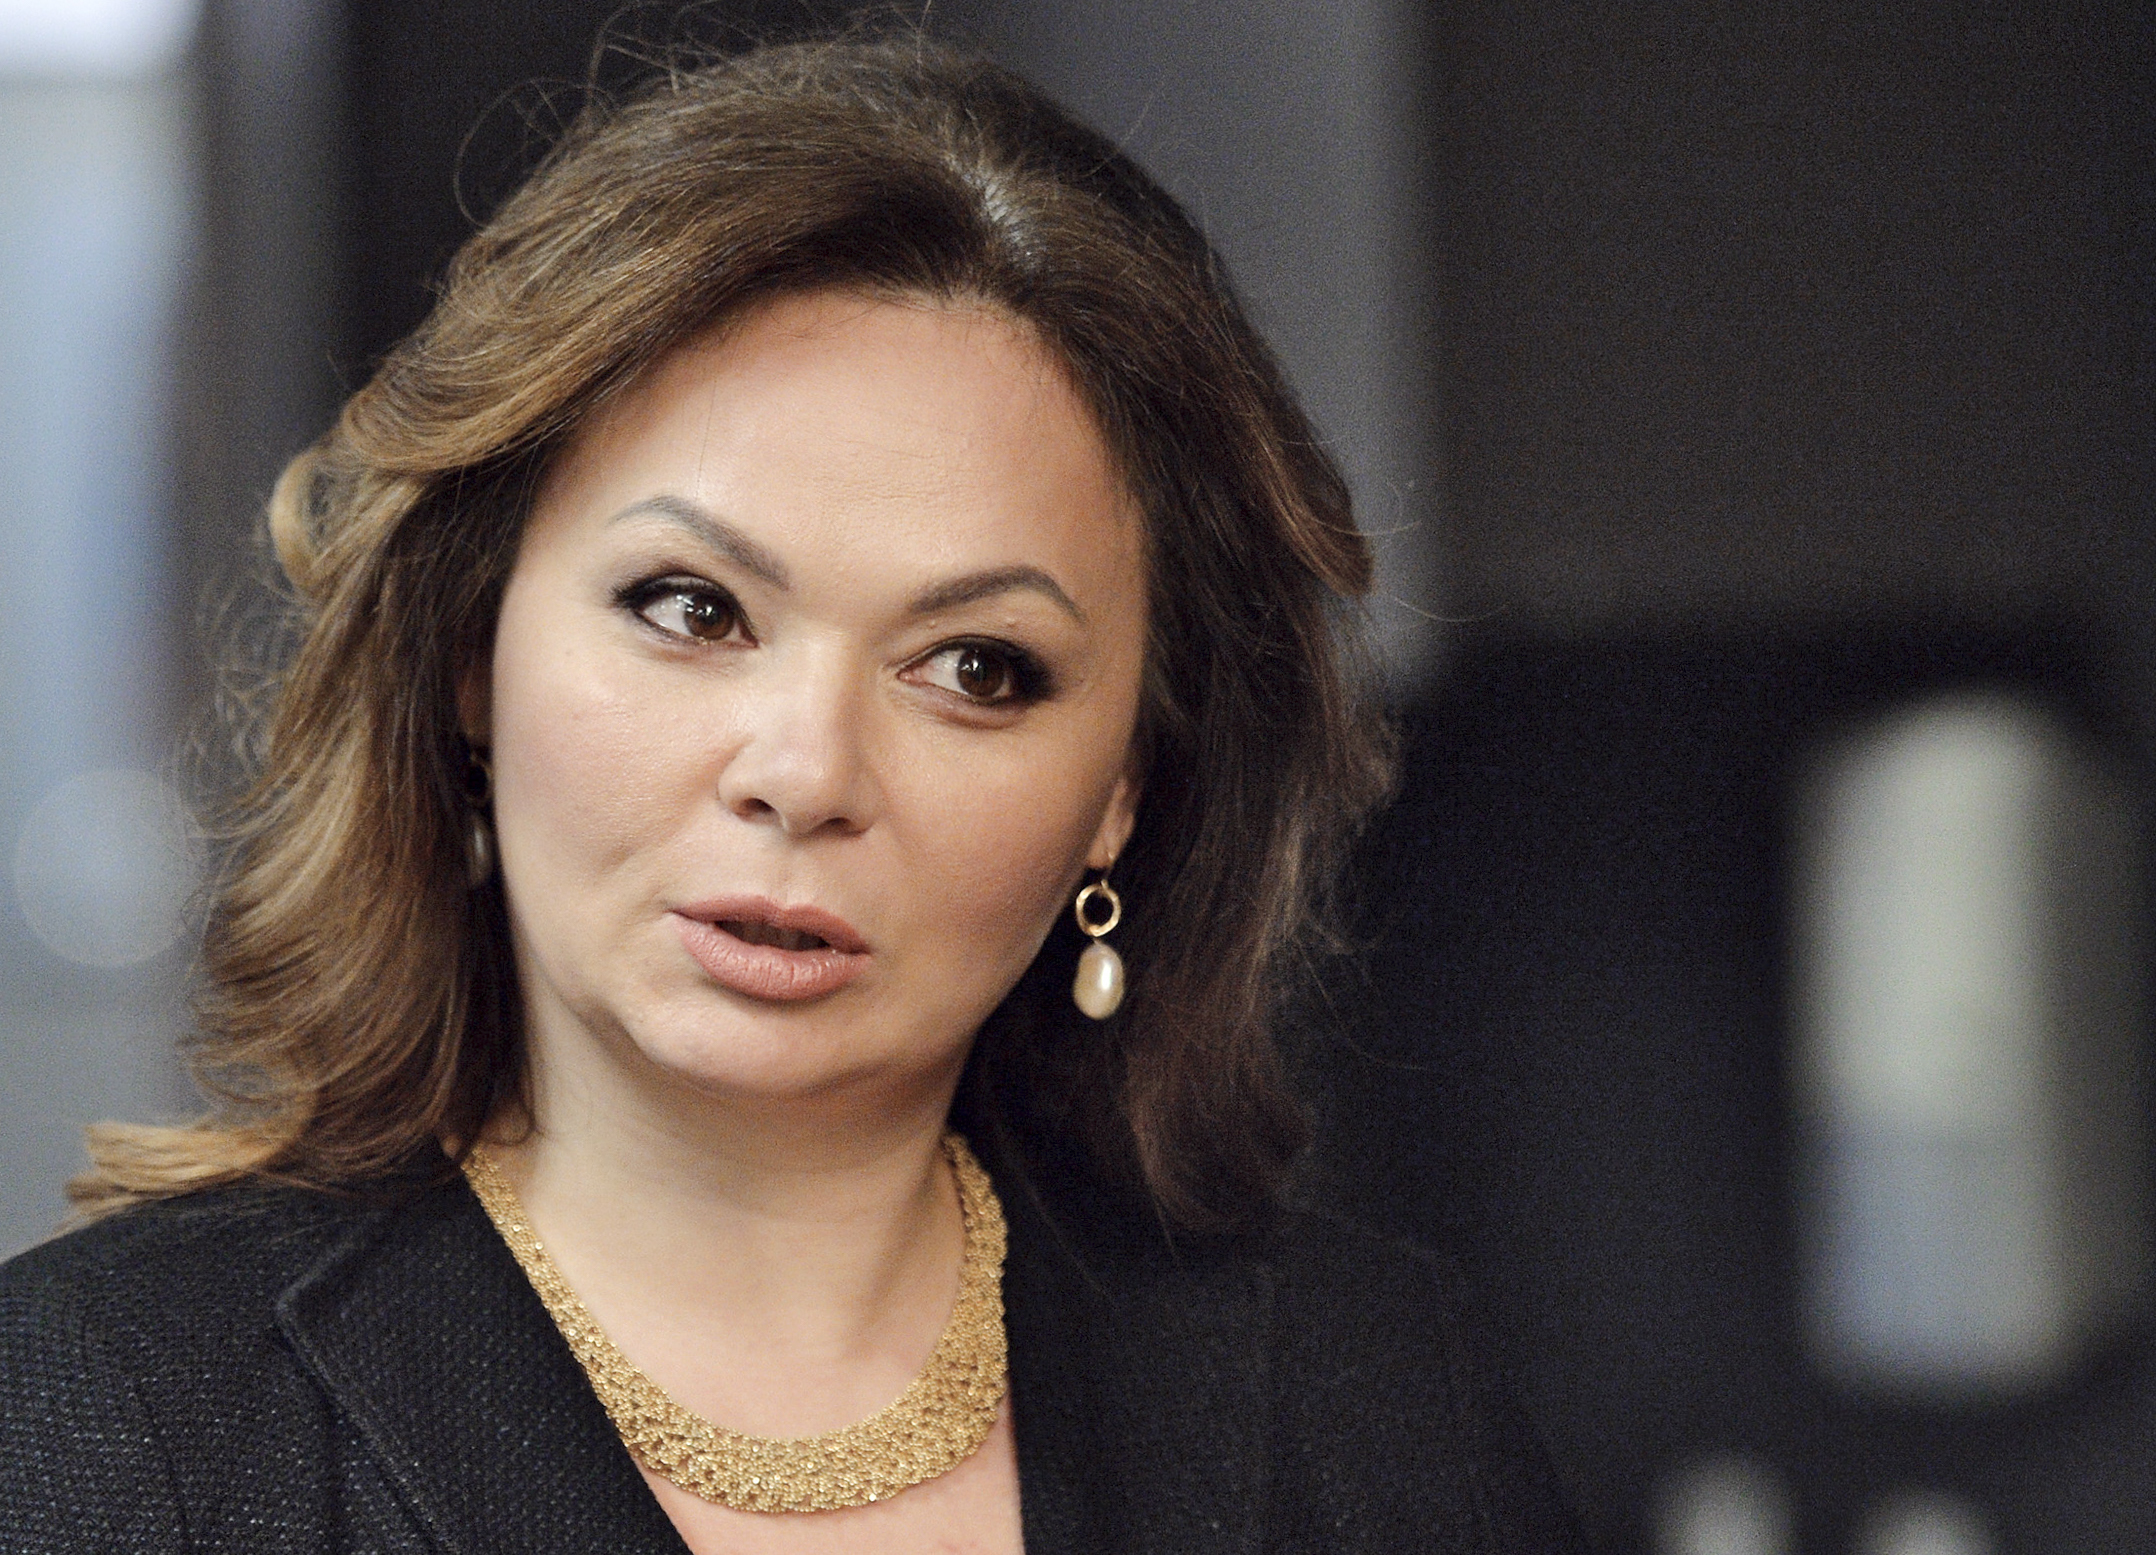 In this photo taken on Tuesday, Nov. 8, 2016, Kremlin-linked lawyer Natalia Veselnitskaya speaks to a journalist in Moscow, Russia.  President Donald Trump's eldest son changed his account of the meeting he had with a Russian lawyer during the 2016 campaign over the weekend, saying Sunday July 9, 2017, that Natalia Veselnitskaya told him she had information about Clinton. A statement from Donald Trump Jr. one day earlier made no mention of Clinton. (Yury Martyanov /Kommersant Photo via AP) RUSSIA OUT